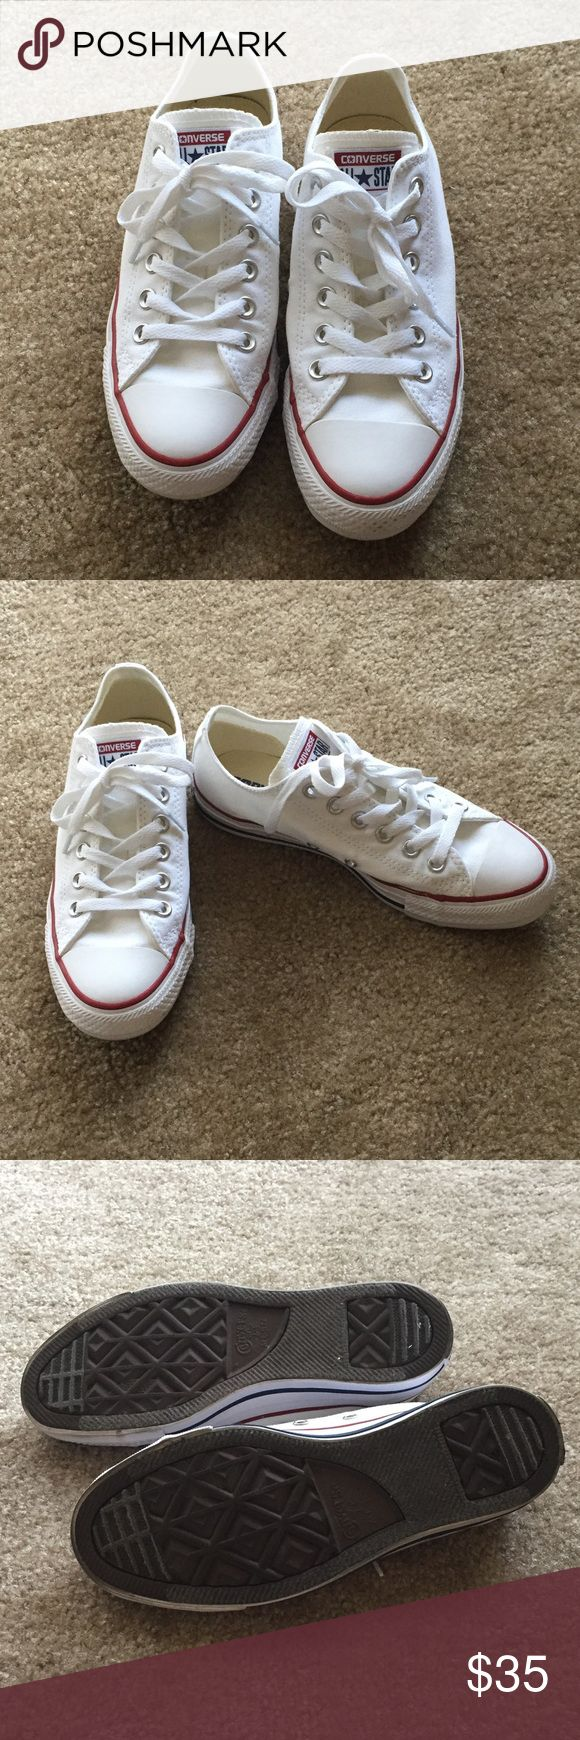 ❗️FLASH SALE❗️ White Low Top Converse Pre-owned. Unfortunately, it didn't fit me so I never got a chance to wear them. Very minimal wear. Please see last 2 pictures as one shoe has a scuff and the other is slightly dirty on the side. Otherwise, in excellent used condition. Women's size 7 or men's size 5. Does not come with box.  If you have any questions, please ask! I want to make sure you love what you buy. ☺️ Converse Shoes Sneakers